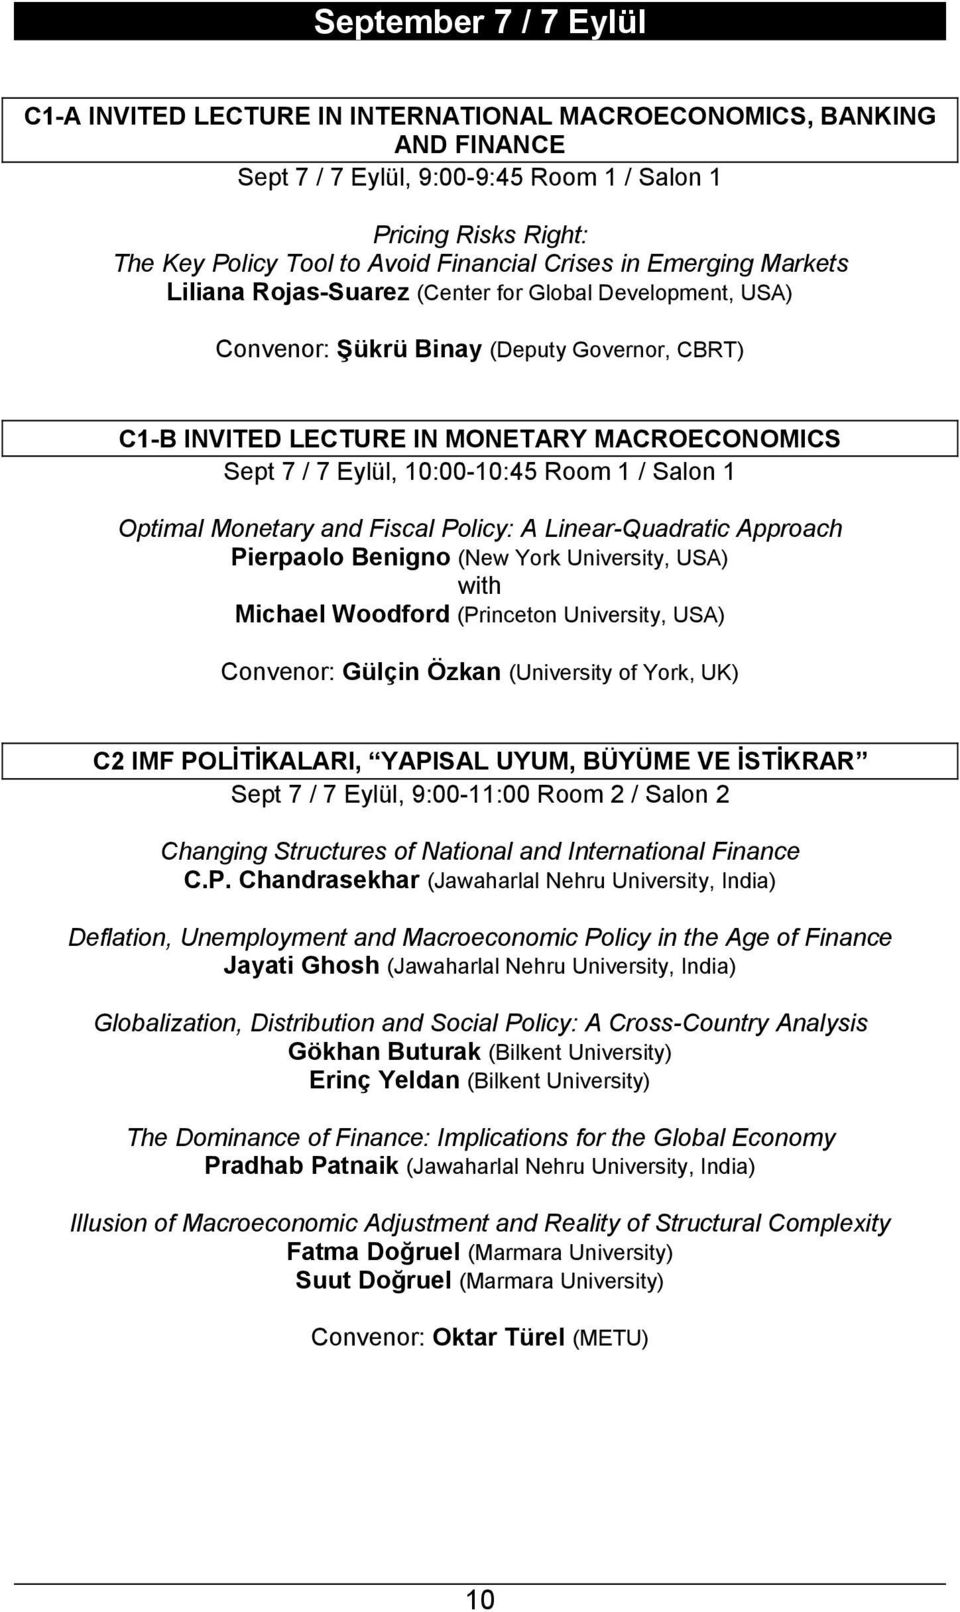 Eylül, 10:00-10:45 Room 1 / Salon 1 Optimal Monetary and Fiscal Policy: A Linear-Quadratic Approach Pierpaolo Benigno (New York University, USA) with Michael Woodford (Princeton University, USA)